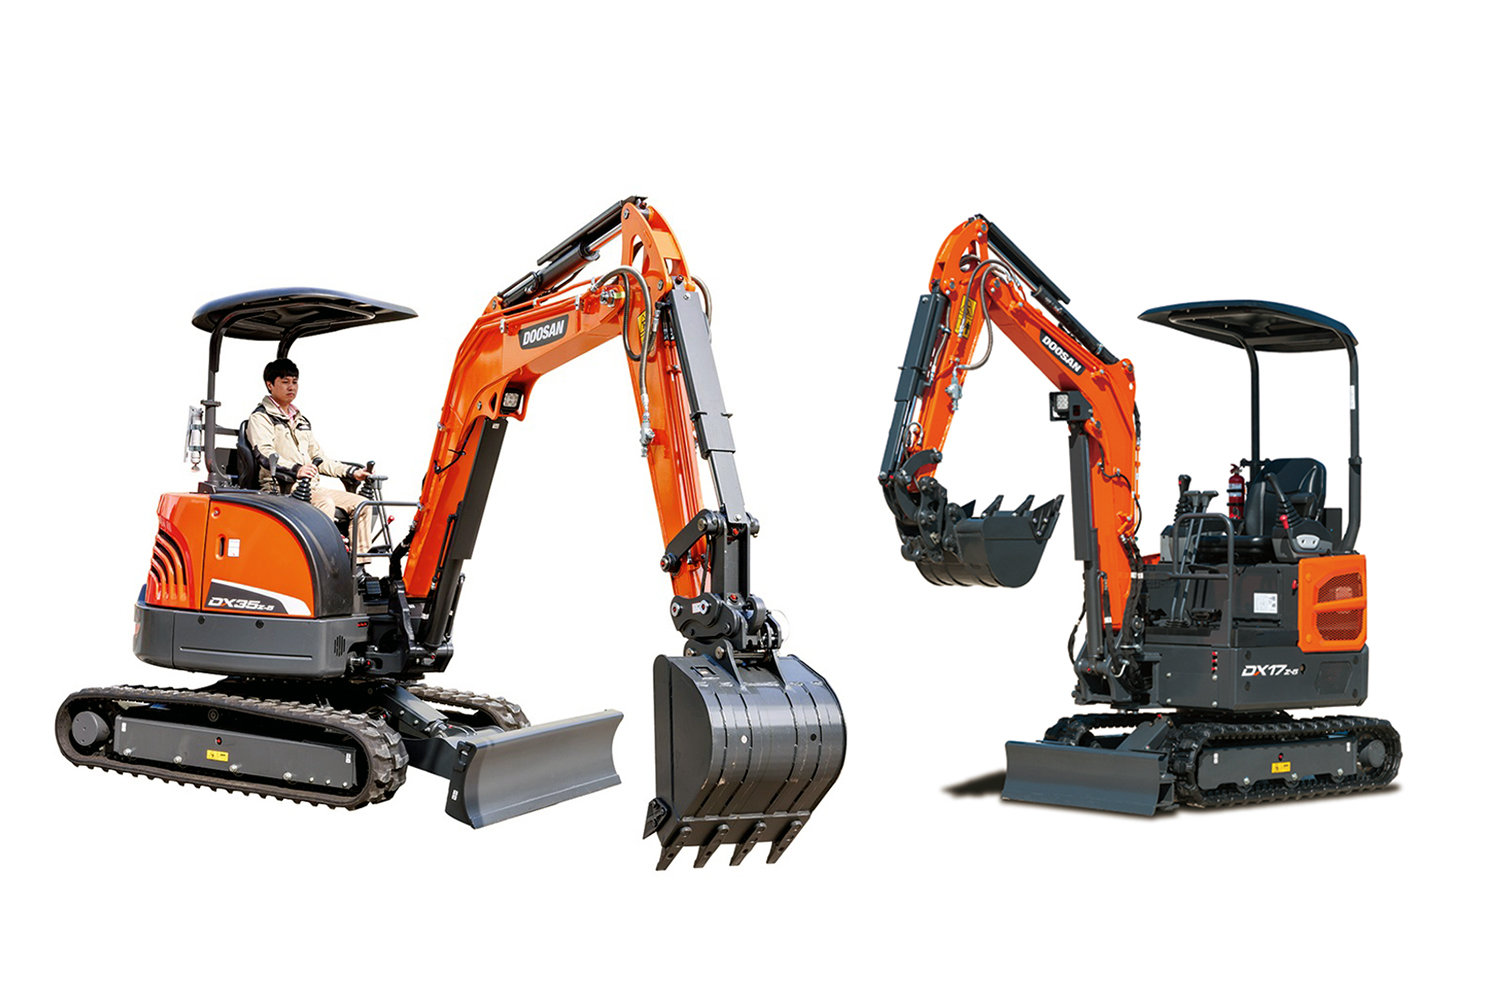 Doosan Infracore, which has been growing at a staggering rate in the Korean mini excavator market, recently launched the DX35z-5 (left) and DX17z-5 (right) mini excavators.